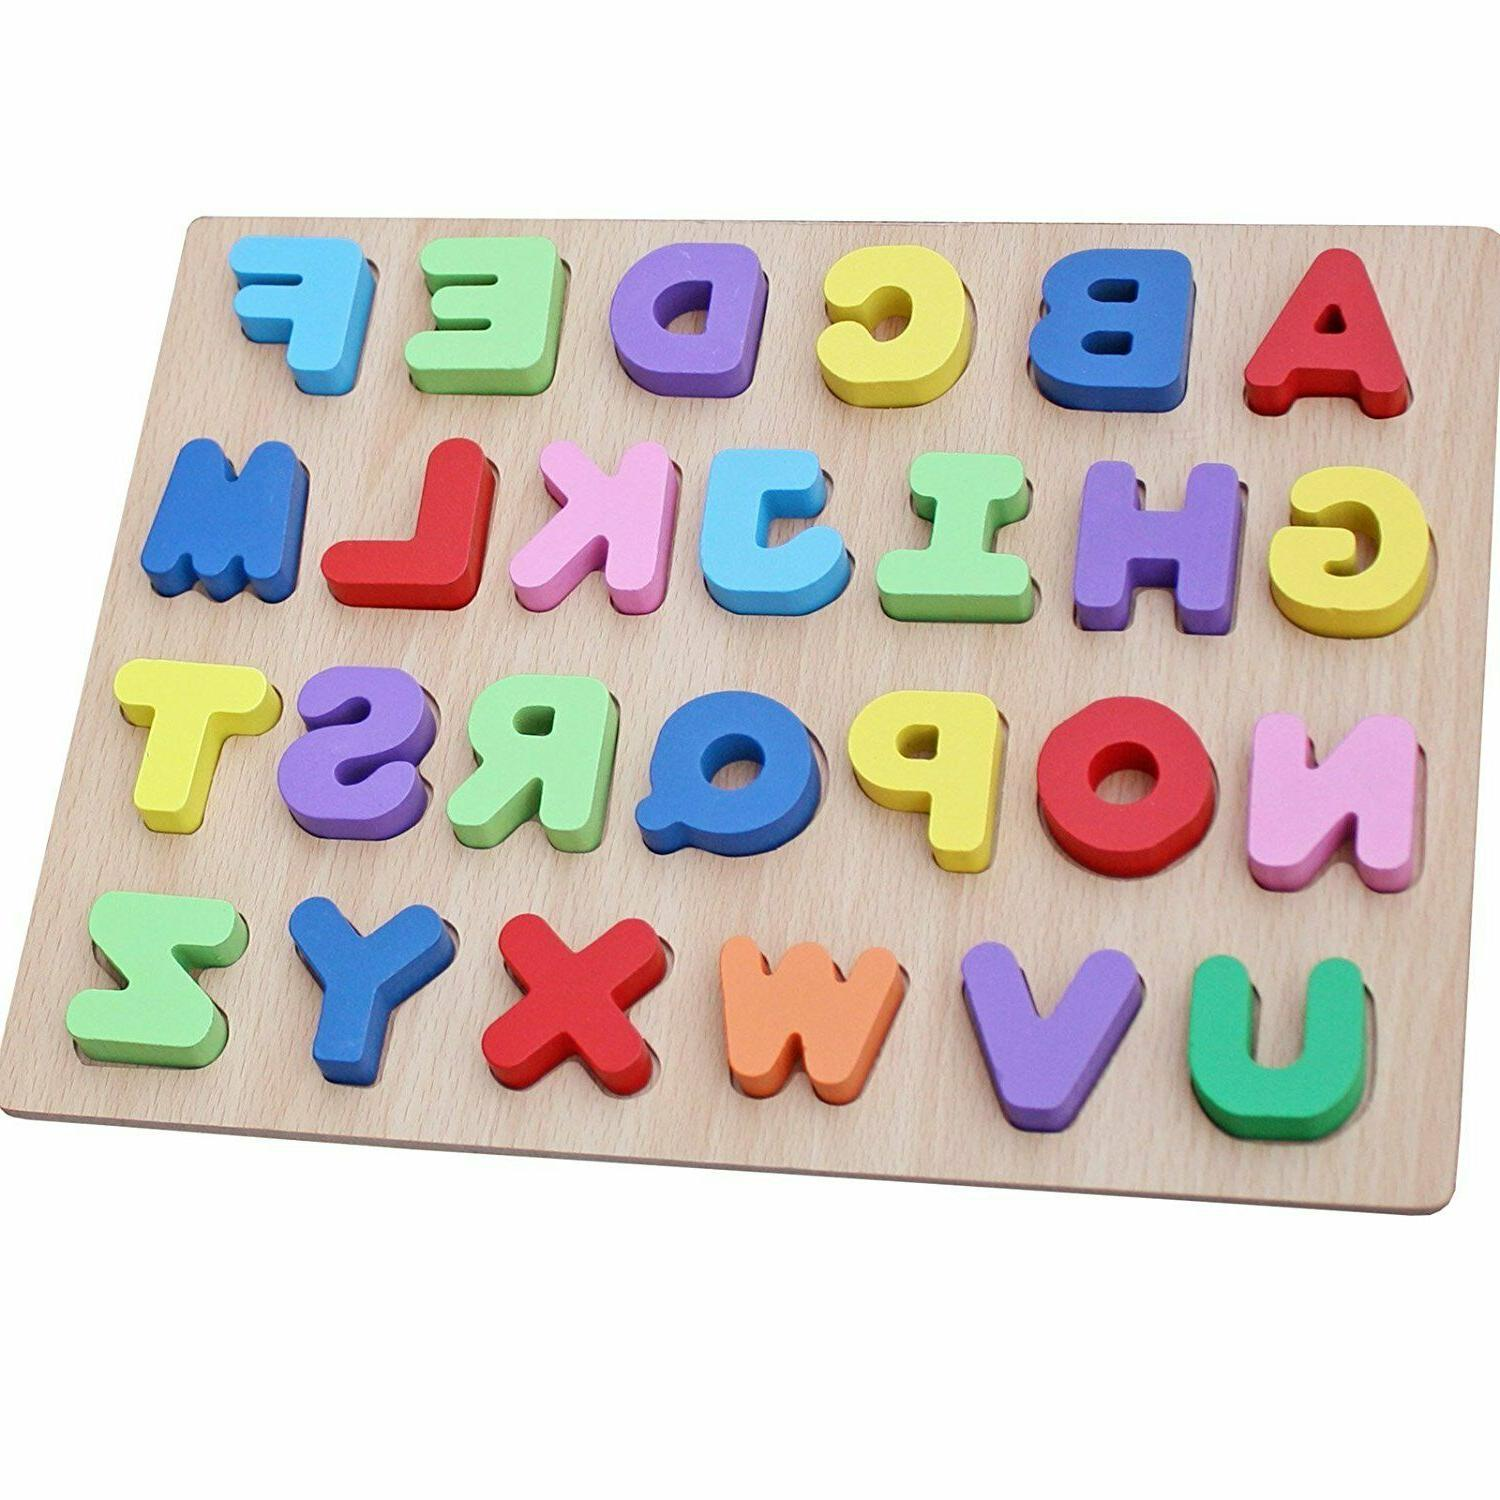 Timy Board for Toddlers Educational Early Learning Toys